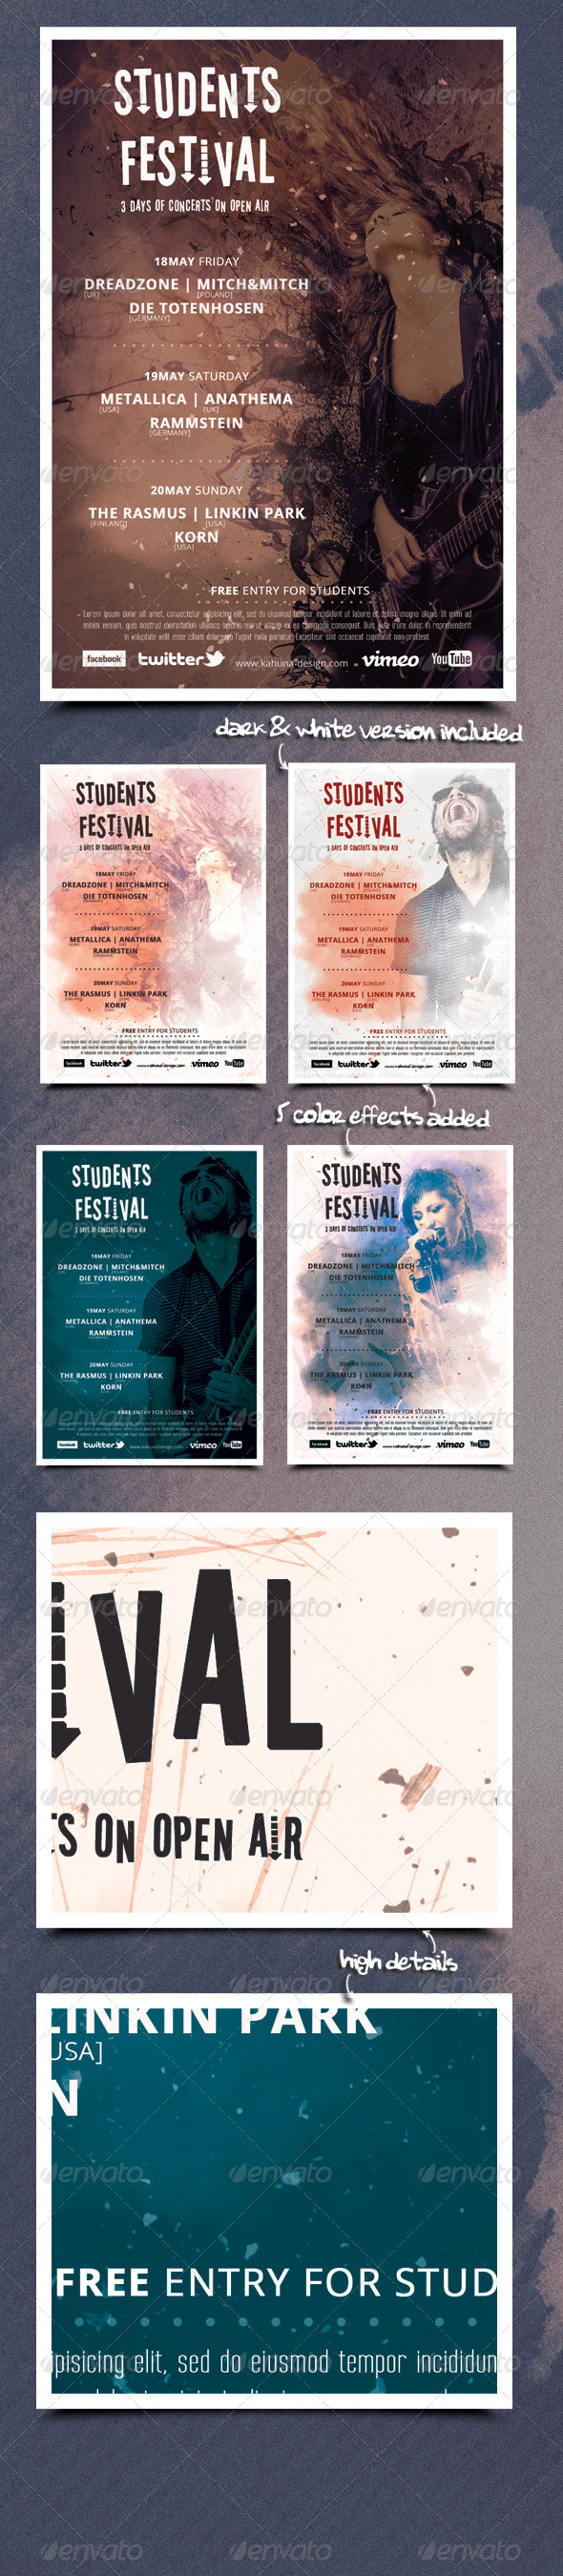 Students City Festival Flyer / Poster - Events Flyers